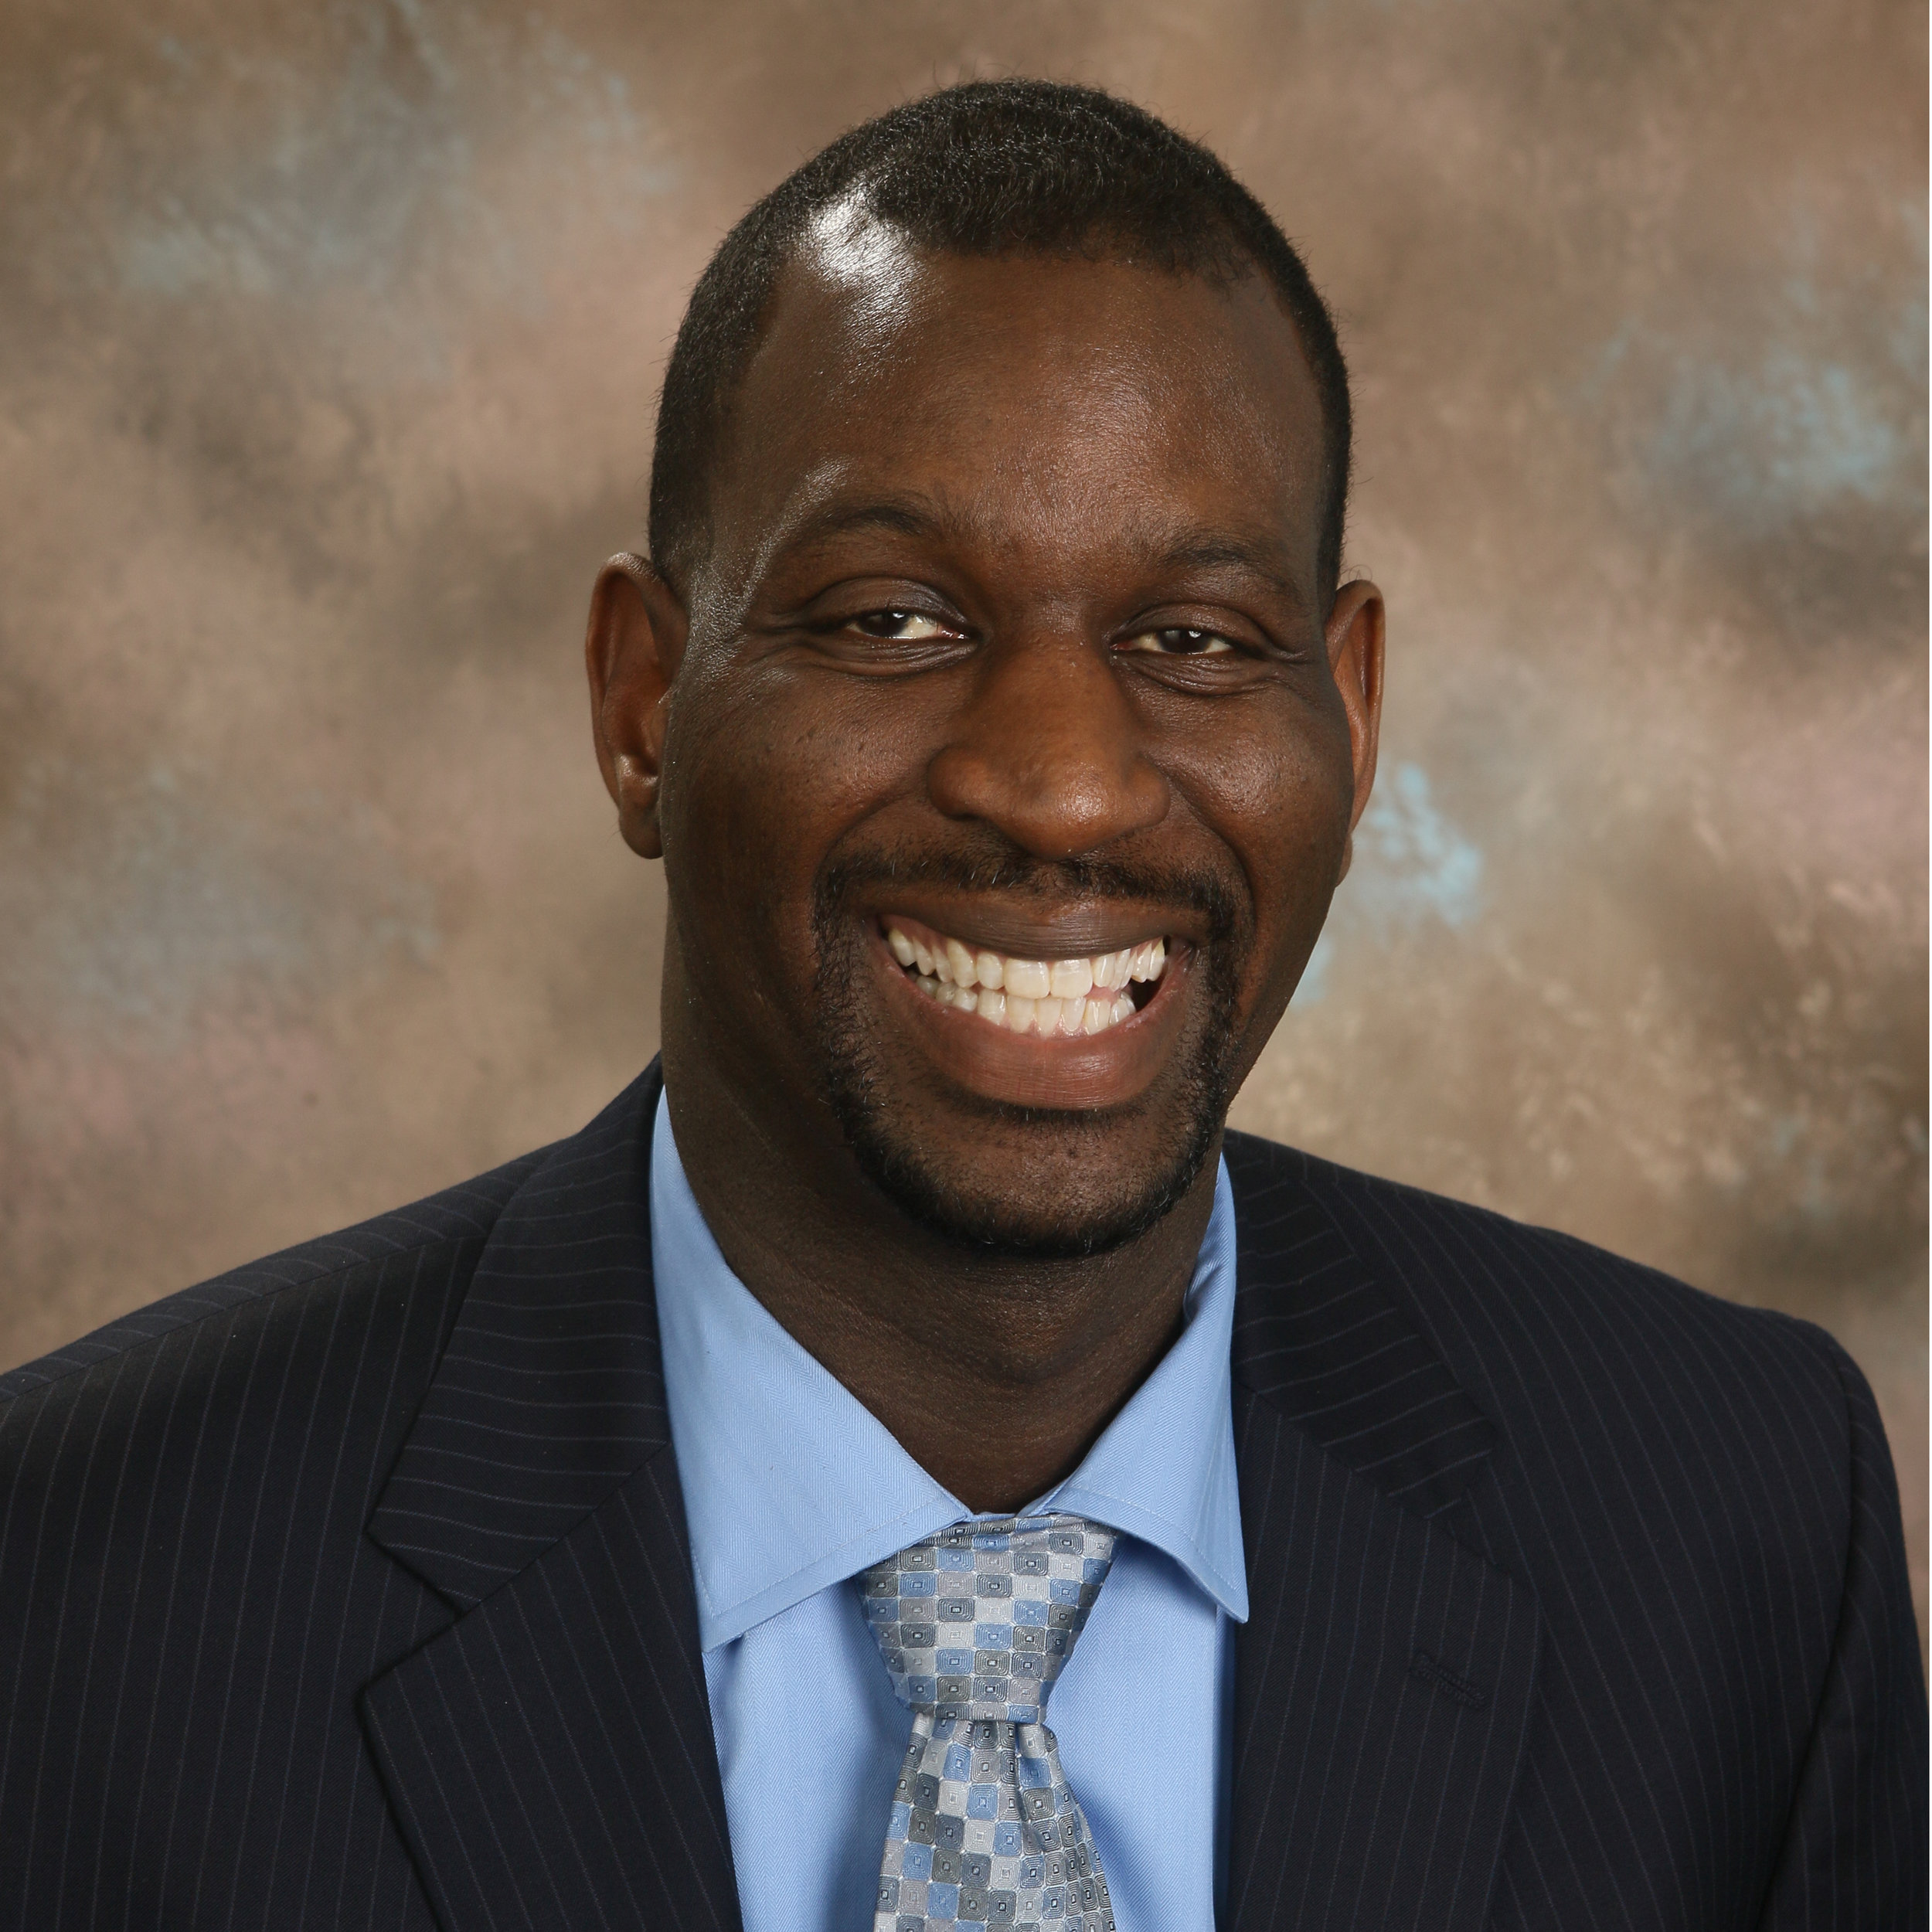 Dr. Gary currently serves as principal of Dutch Fork High School in Lexington/Richland School District Five. Prior to working at Dutch Fork High, he served as an elementary and middle school principal in Lexington/Richland Five. In 2017, he was named South Carolina Middle School Principal of the Year by the South Carolina Association of School Administrators and Dutch Fork Middle was named a Palmetto's Finest School.  He holds a Bachelor of Science Degree from Francis Marion University, a Master's in Educational Administration from the University of South Carolina and a Doctorate in Educational Leadership from Nova Southeastern University.  In his spare time, he enjoys reading and spending time with his wife Melissa and sons Gerald II and Cameron.